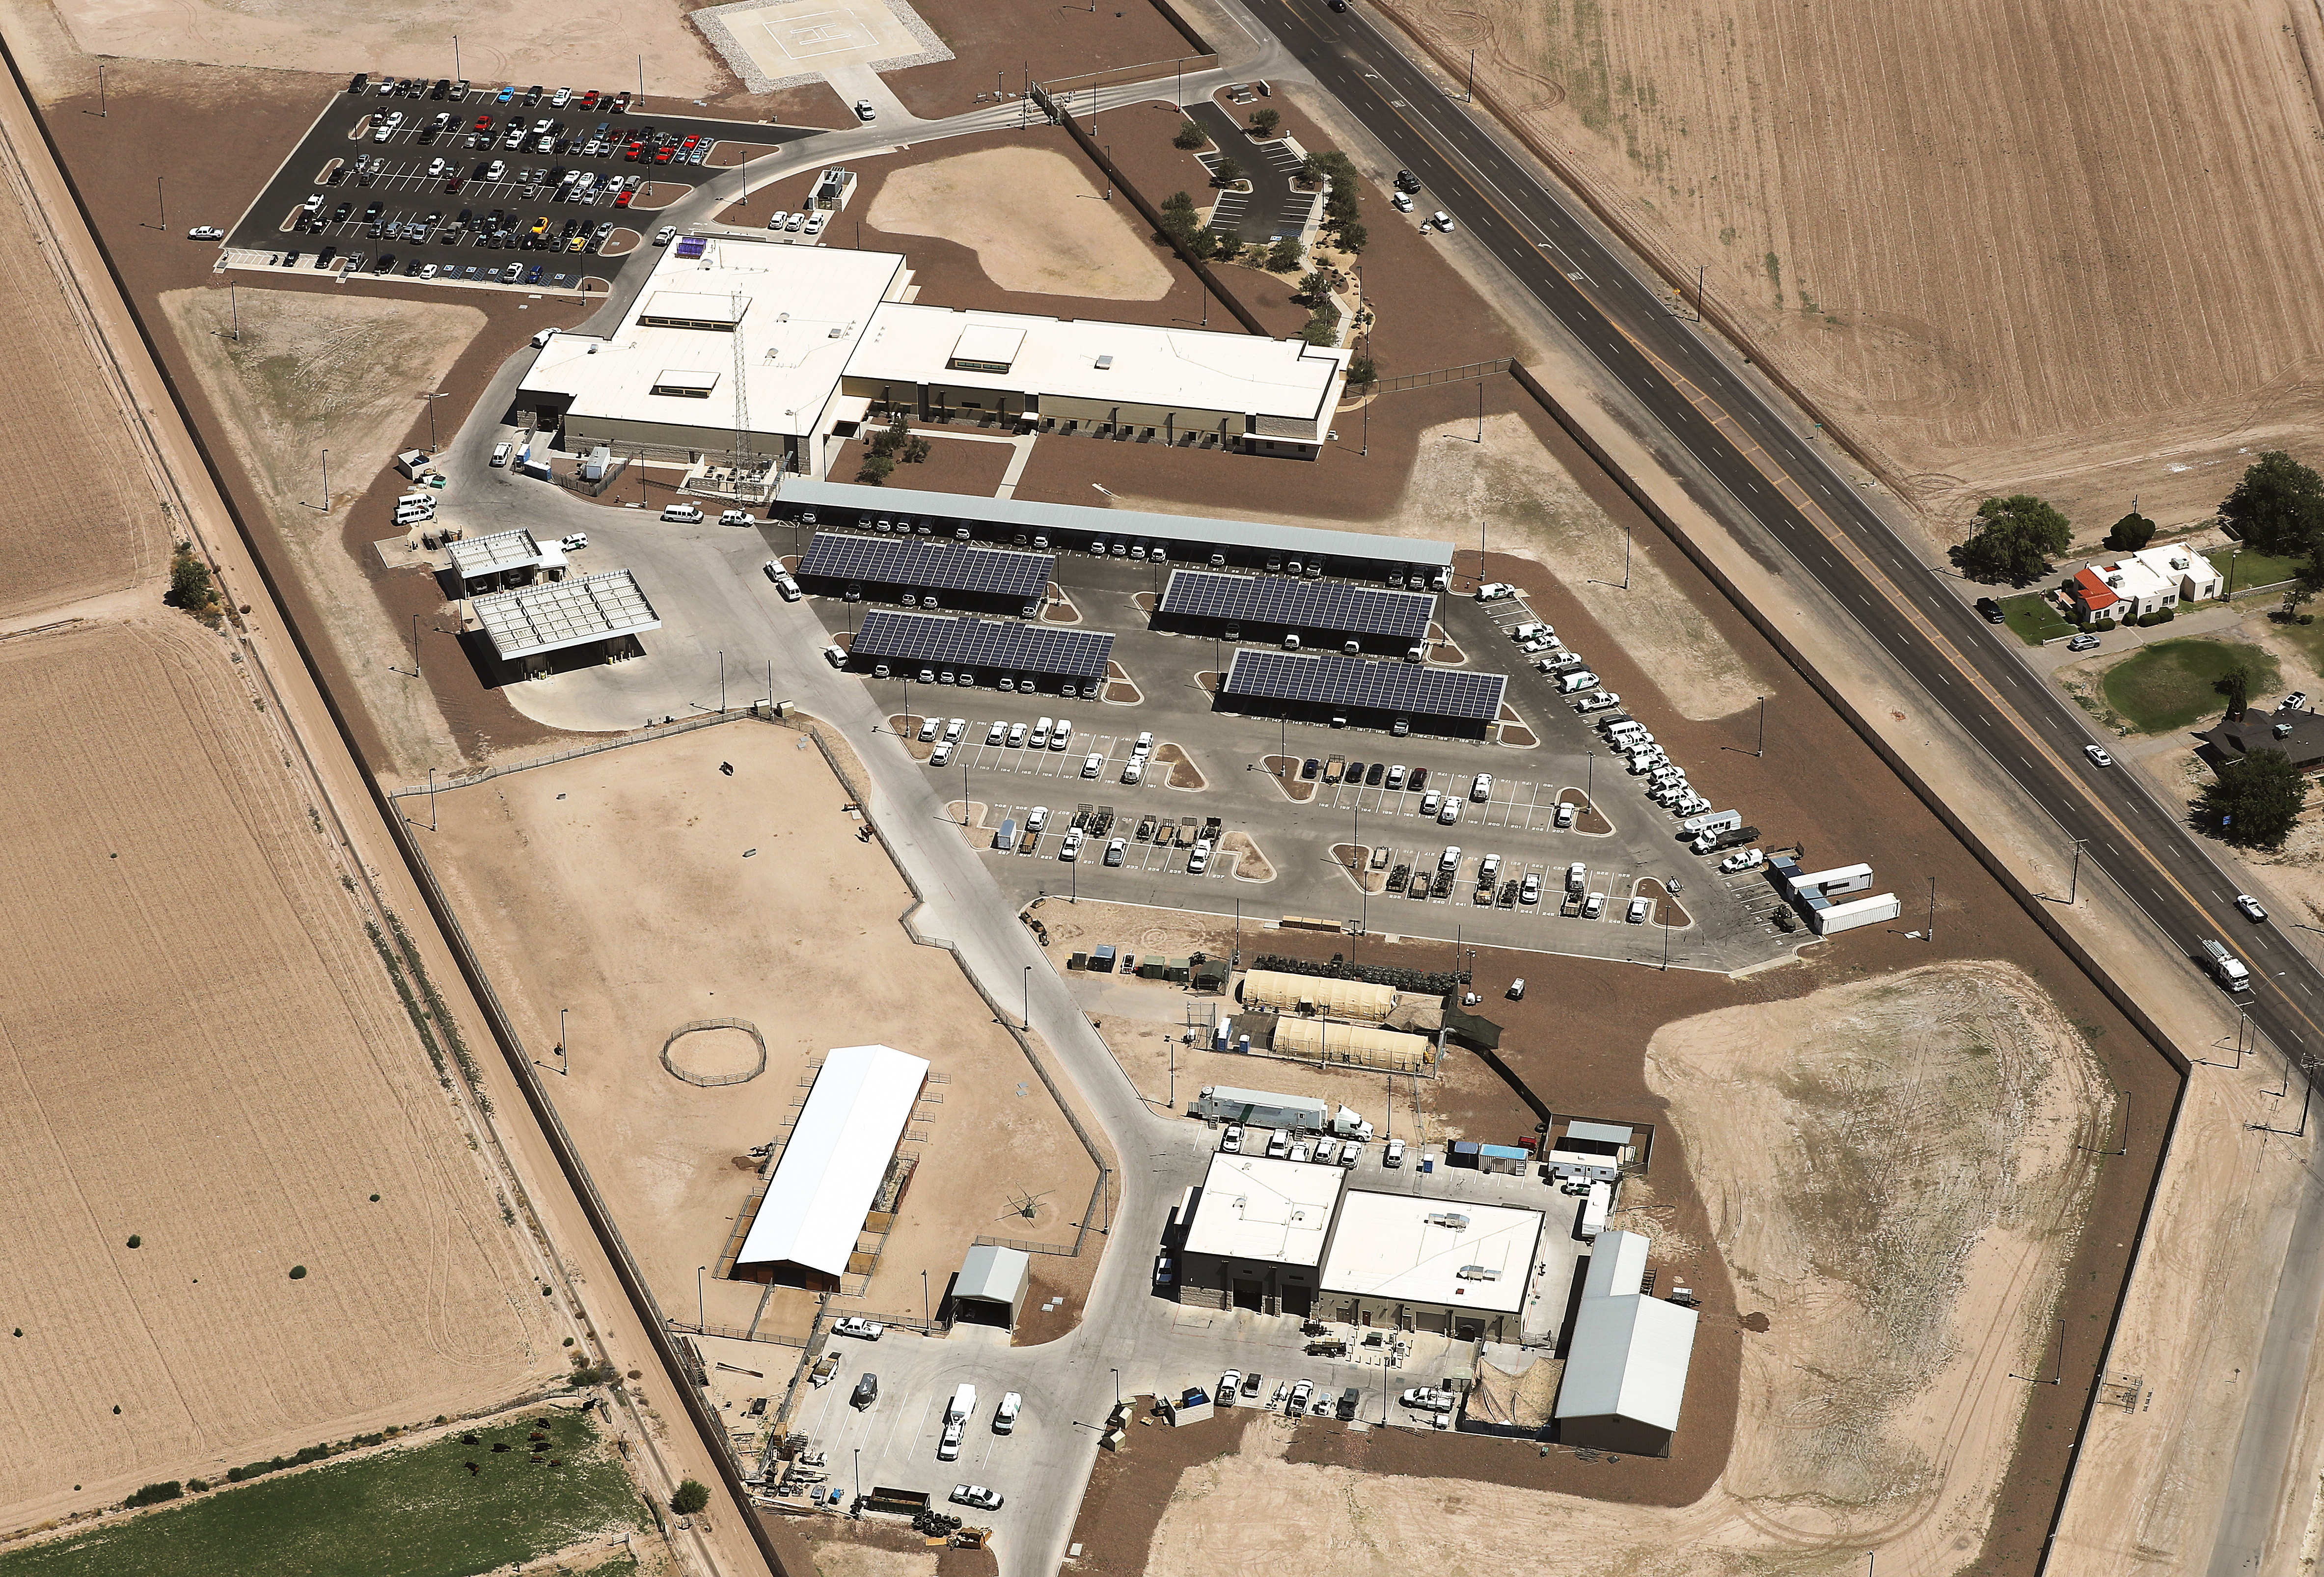 An aerial view of the U.S. Border Patrol facility where attorneys reported that detained migrant children had been held in disturbing conditions on June 28, 2019 in Clint, Texas. (Mario Tama/Getty Images)